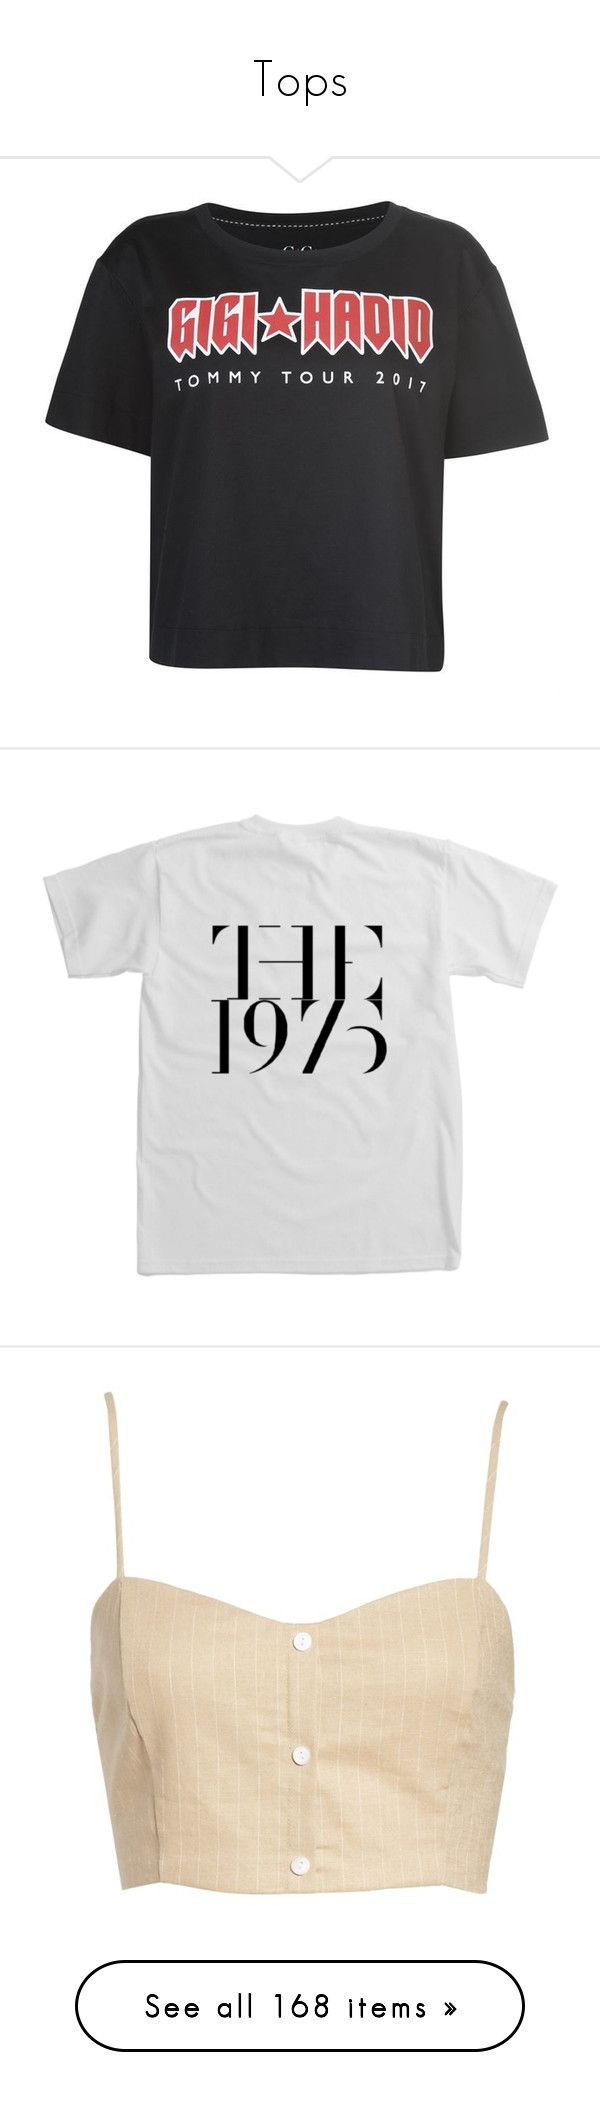 Black keys t shirt etsy -  Tops By Still Get Butterflies Liked On Polyvore Featuring Tops